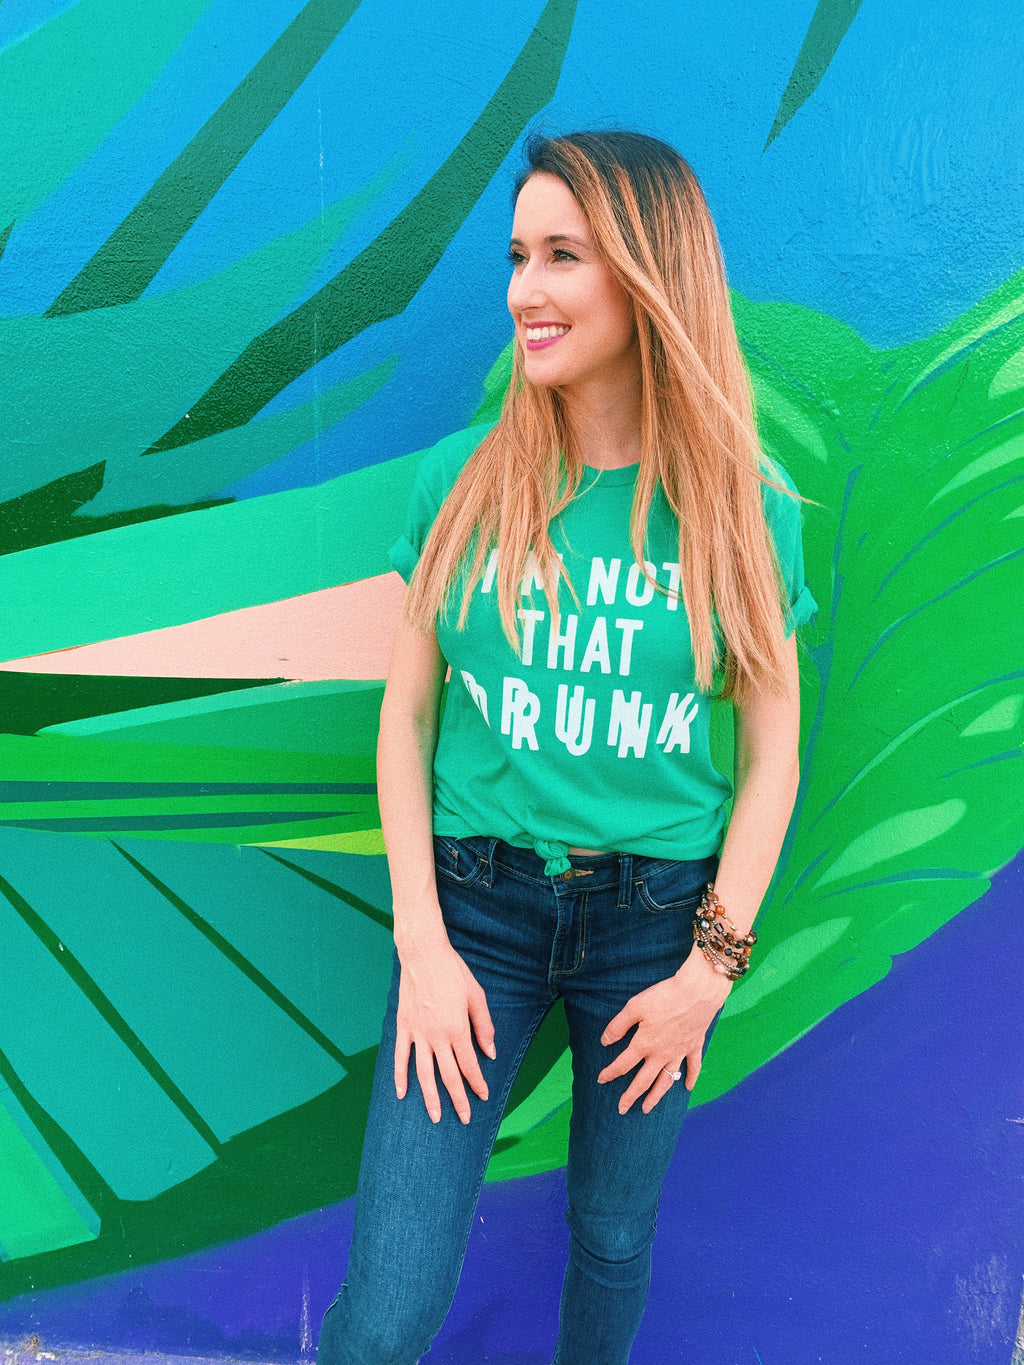 Let people know that you're NoT tHaT dRuNk this St. Patrick's Day! This funny St. Patrick's Day shirt is a great shirt to show that not only are you there to have a good time but you're also ready to get shamrocked.... ( if you're not already!)